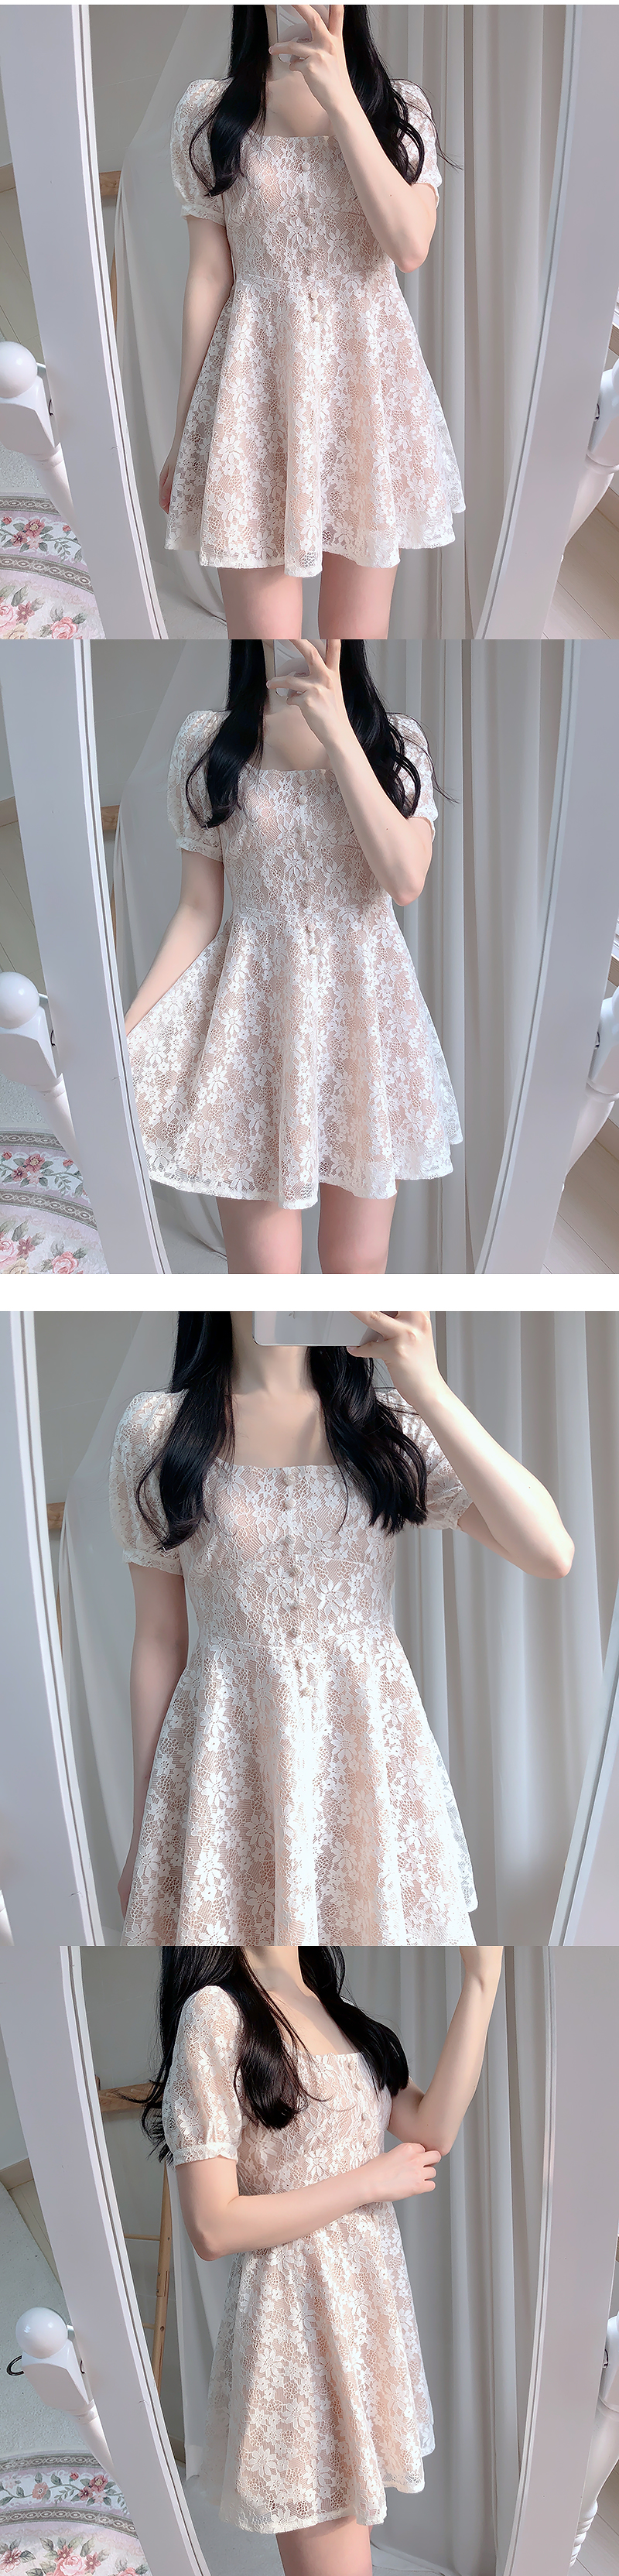 Wedding square lace dress